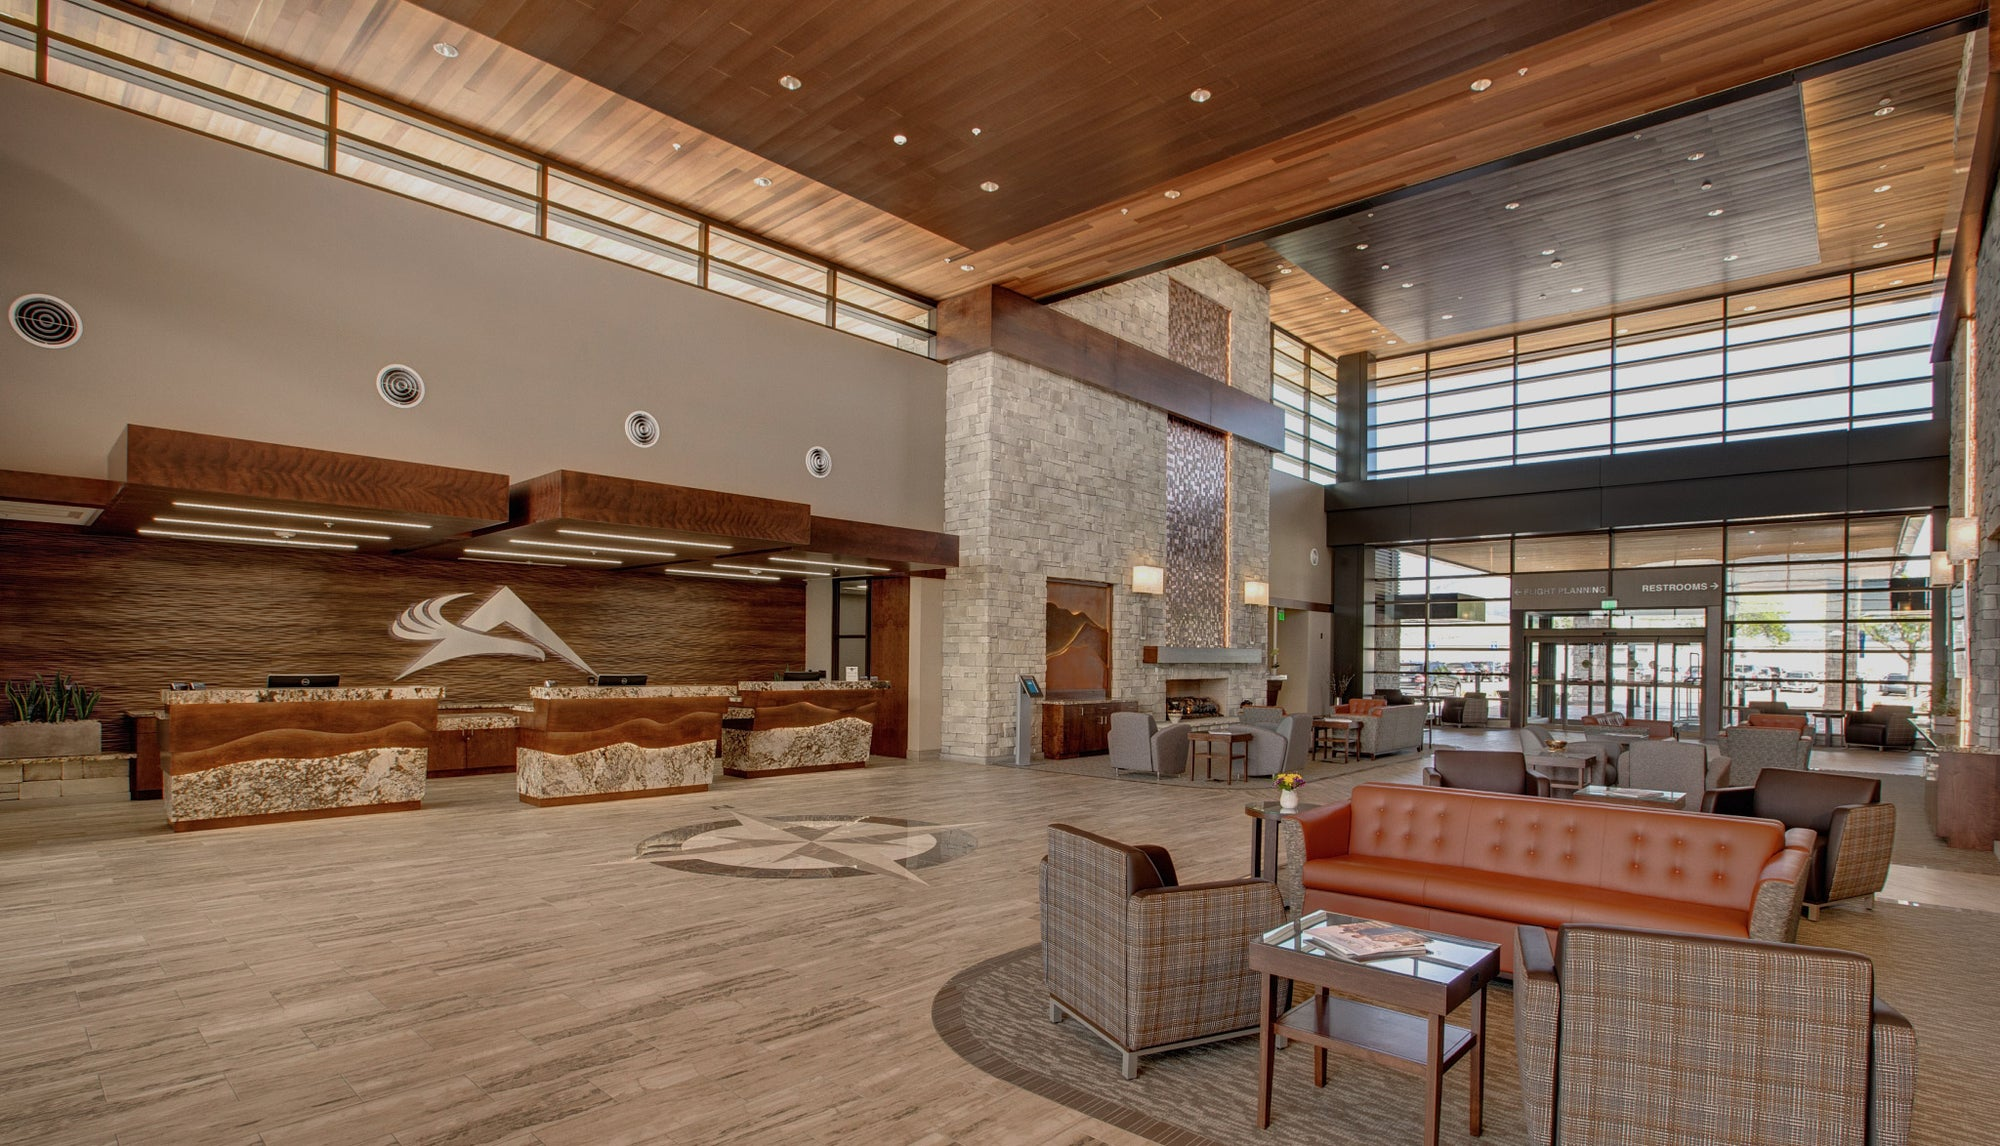 3 Tips For Maximizing Seating In Your Lobby